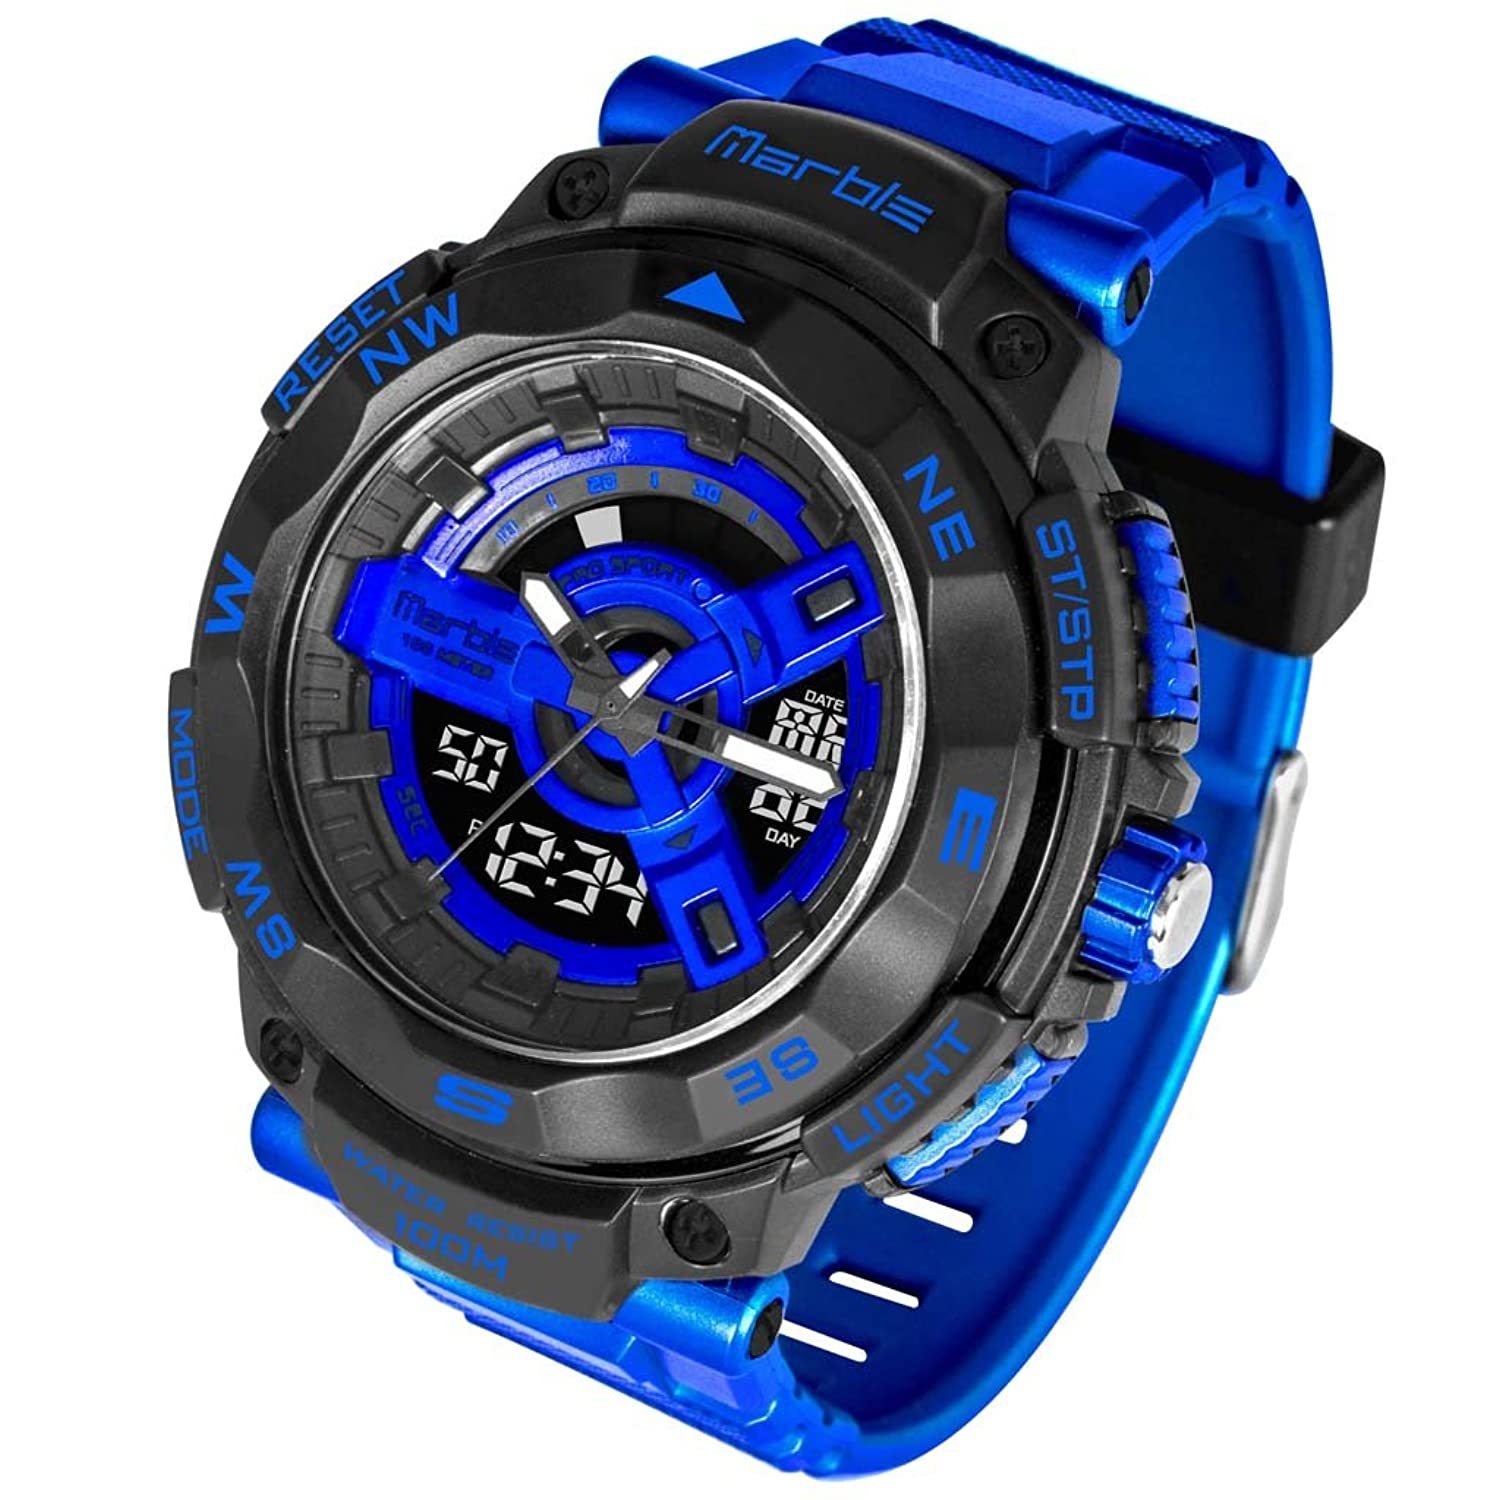 LED Wasserdicht Quarz Digital Dual Time Zone Multifunktions-Stoßfest Outdoor Sport Uhren td101202p